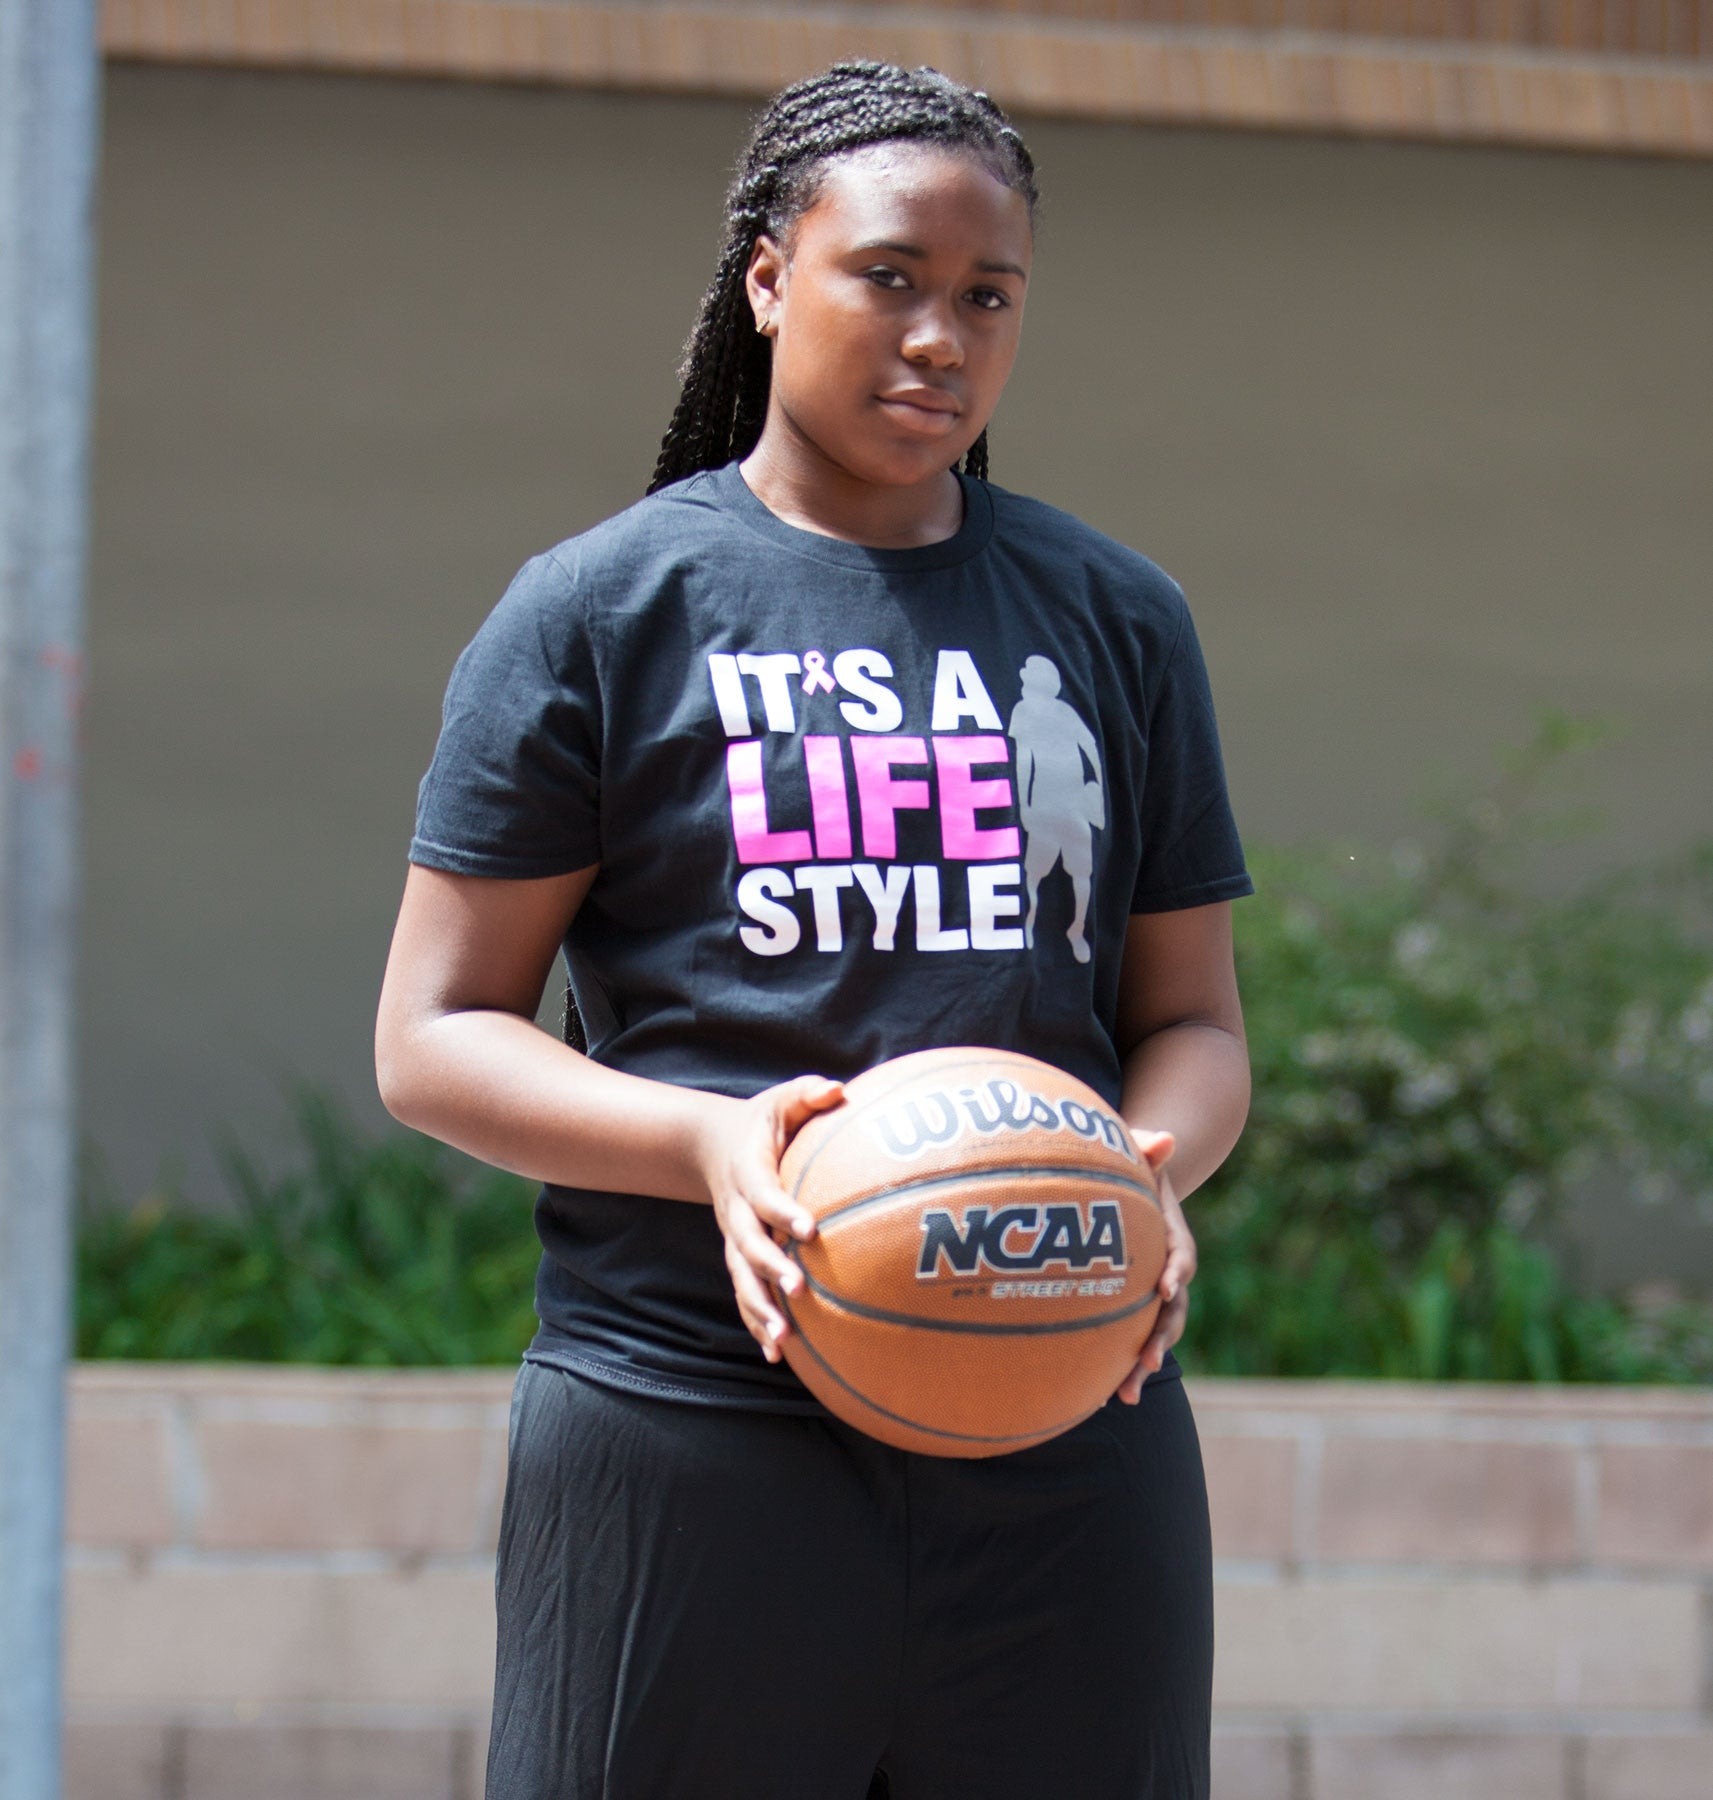 Breast Cancer Awareness Tee - Women's Basketball - Breaking Boundaries Apparel  - 2